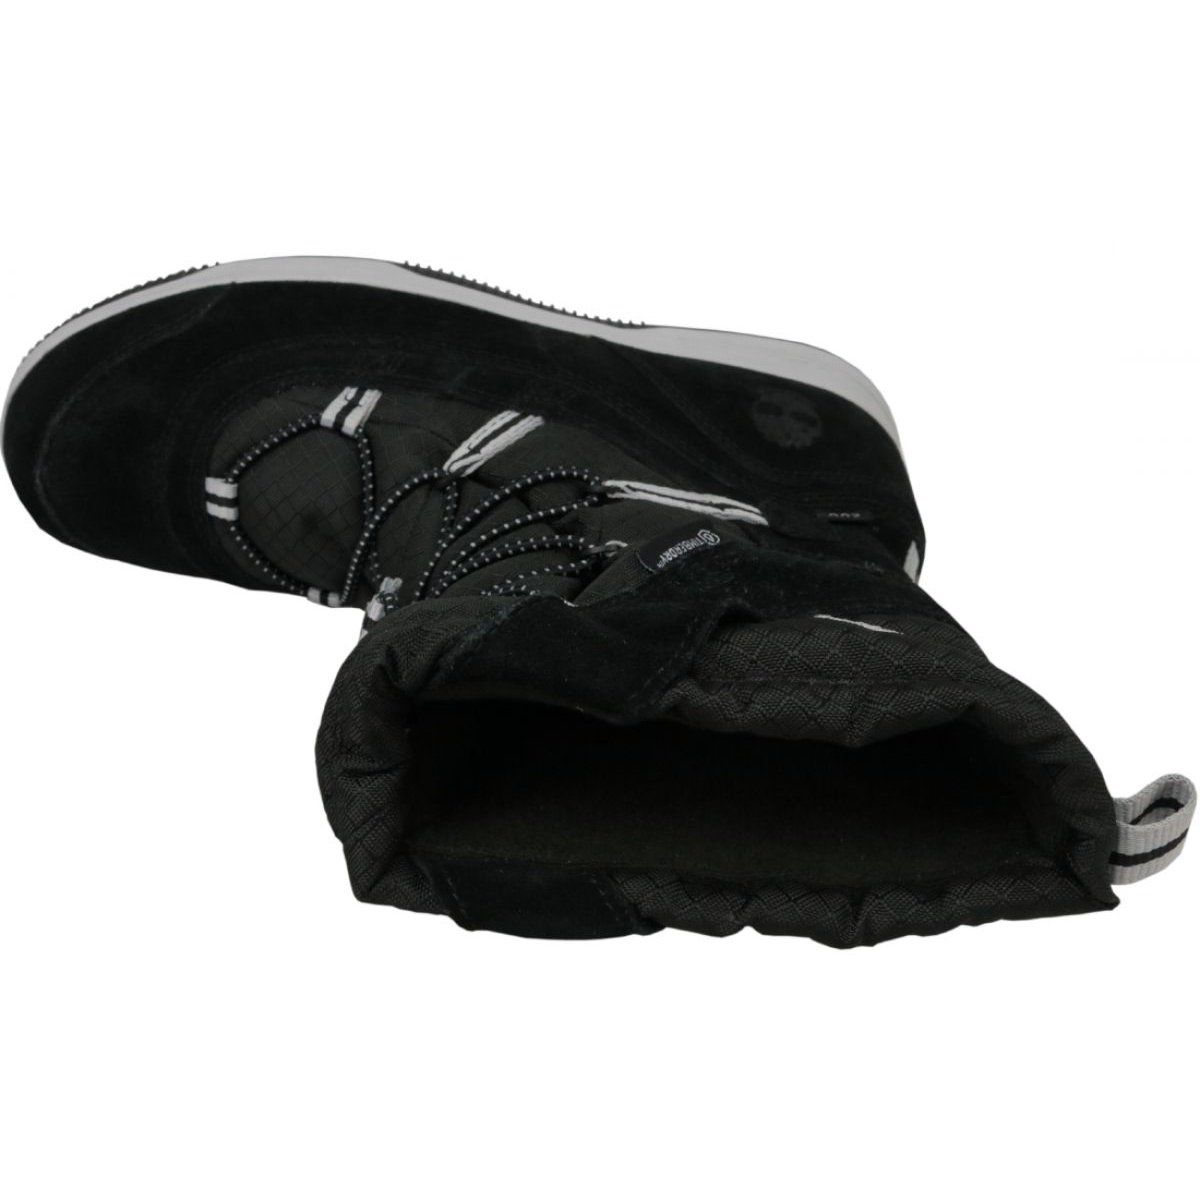 Children S Sports Shoes For Children Innamarka Timberland Snow Stomper Pull On Wp Jr A1uik Winter Shoes Black Winter Shoes Black Shoes Kid Shoes